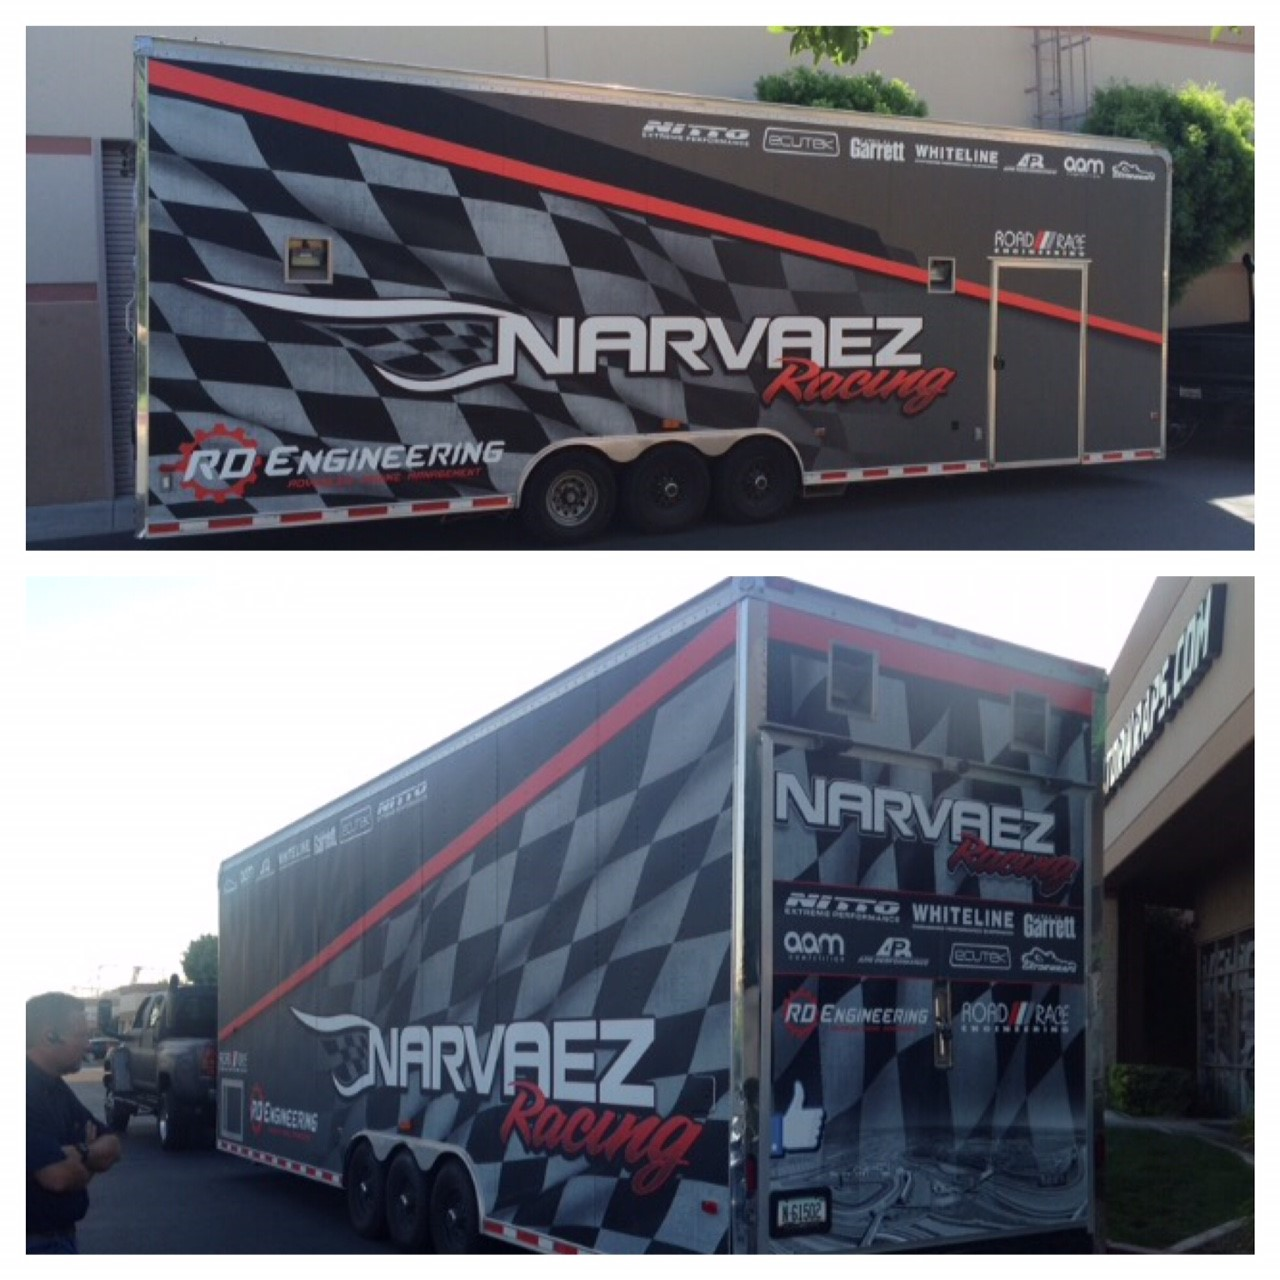 narvaezracing